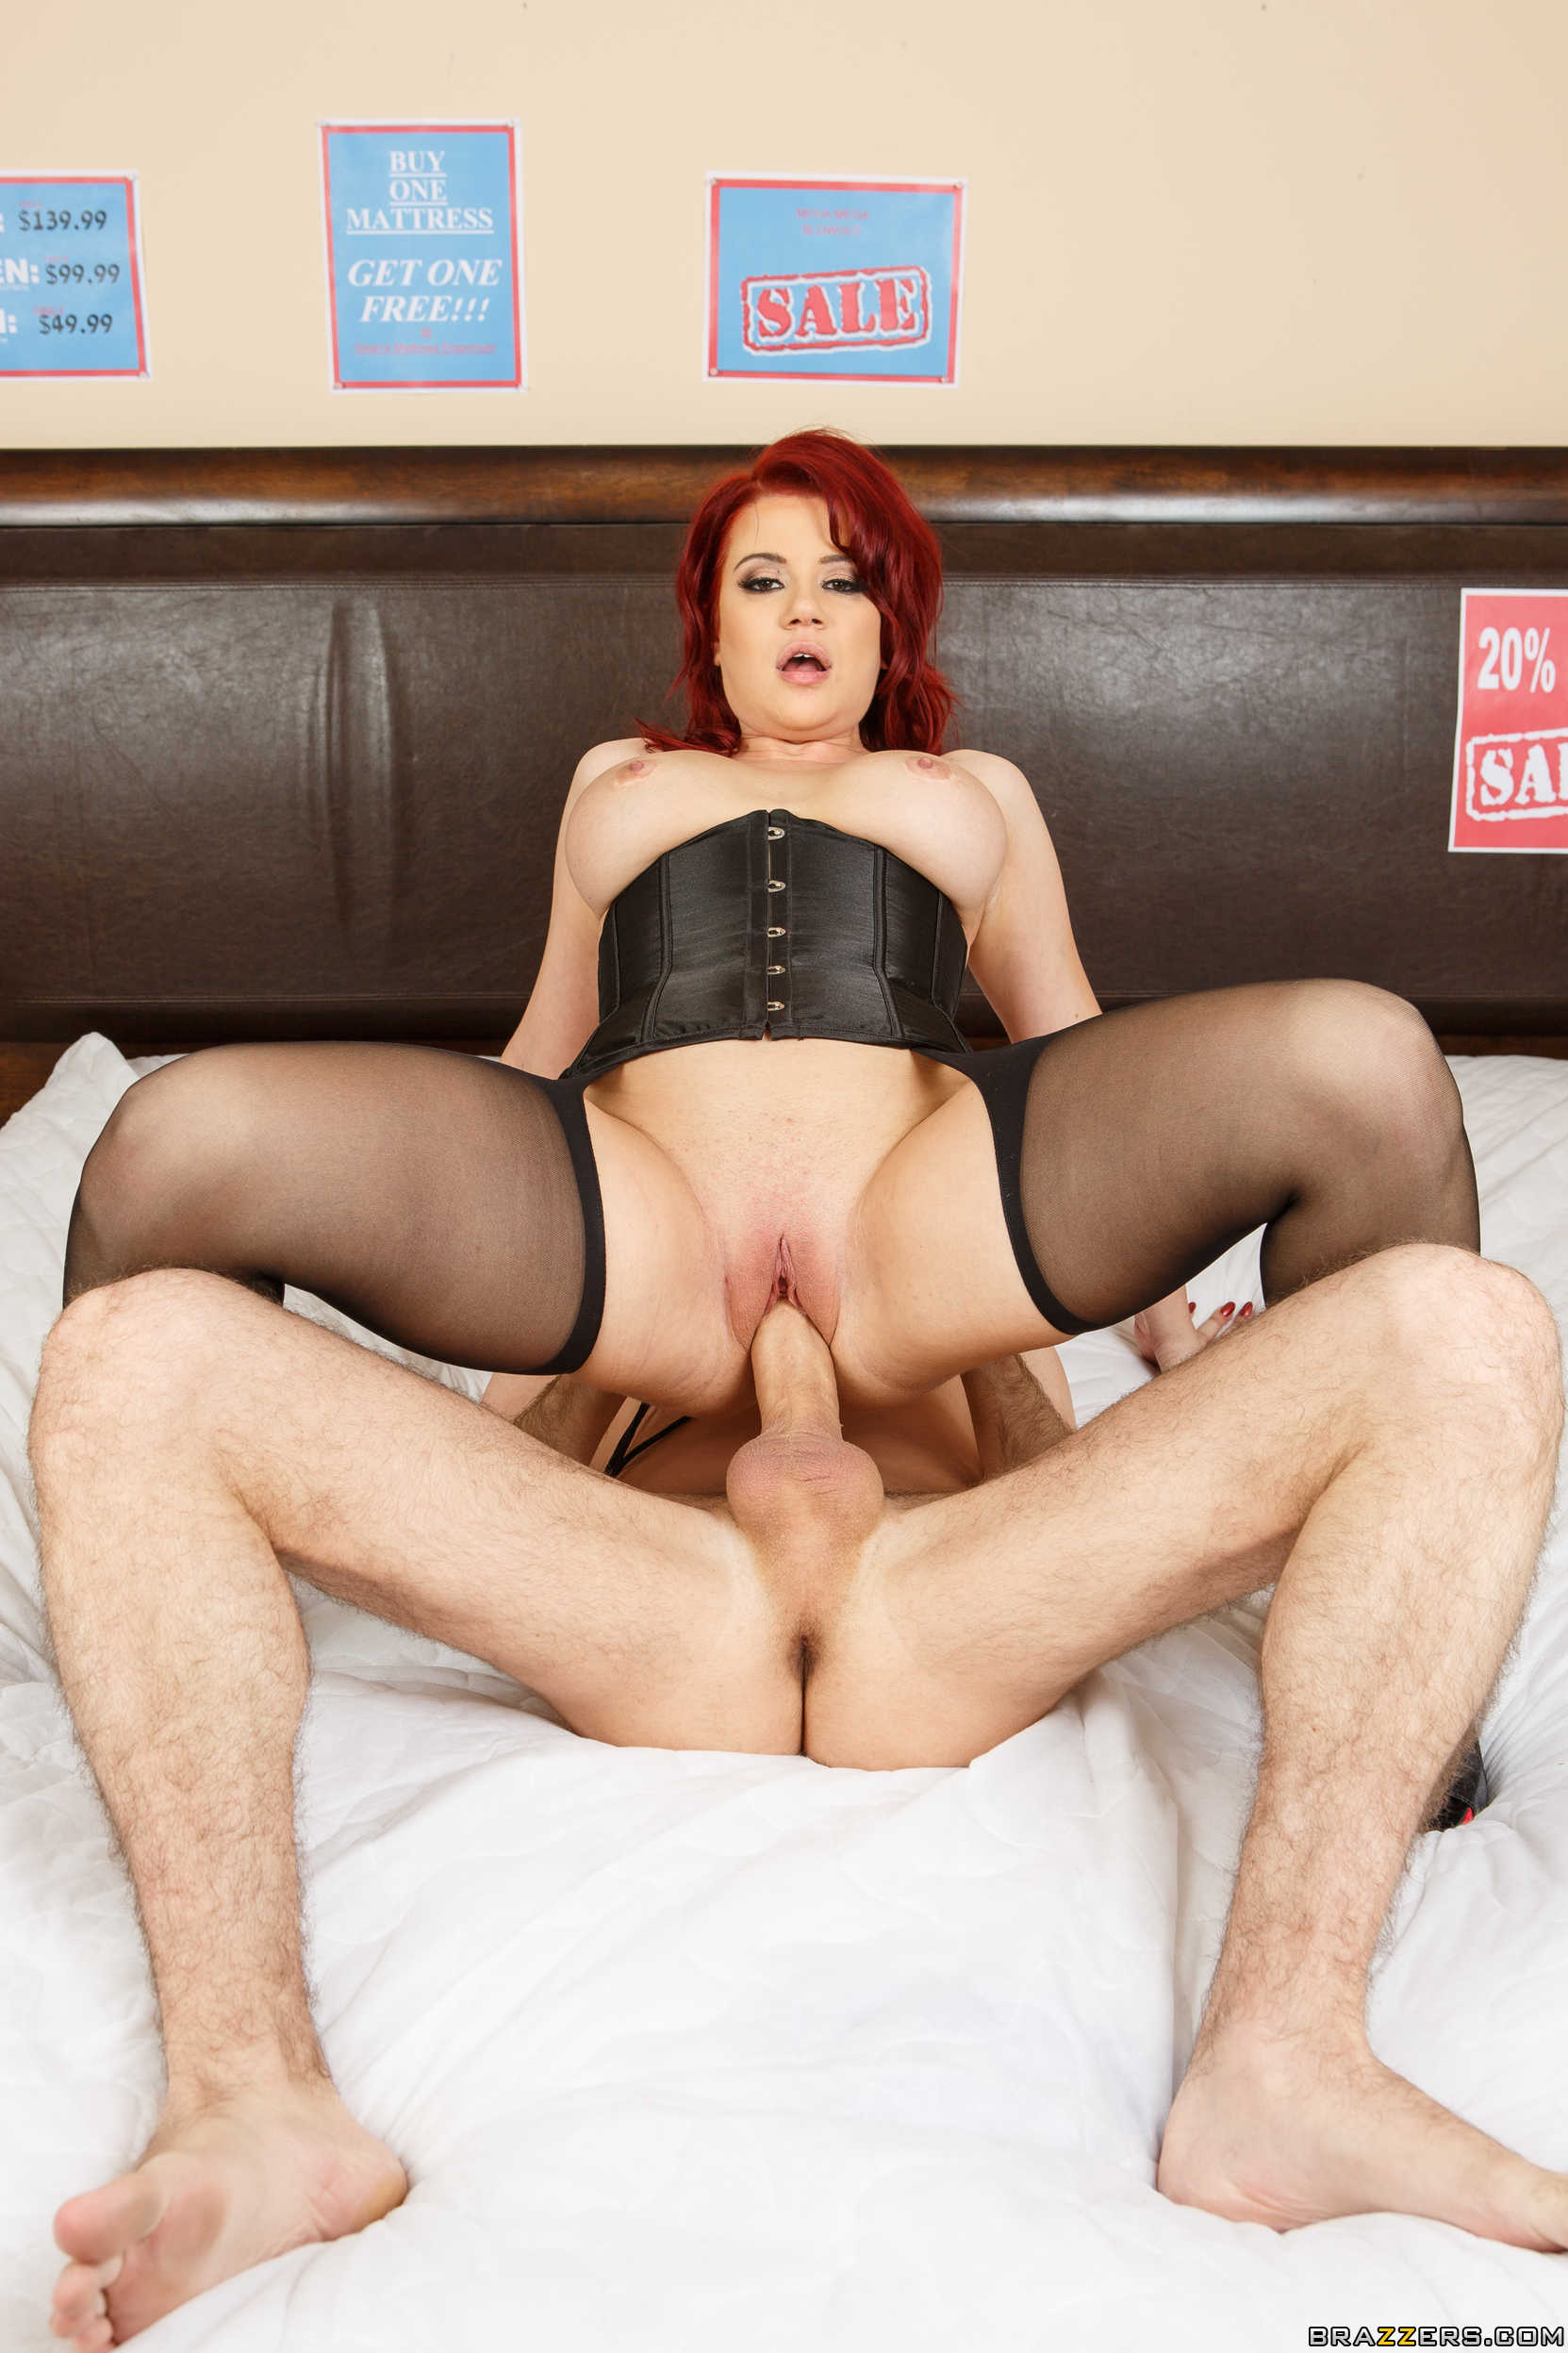 XXX Sex Photos Big tit ginger porn